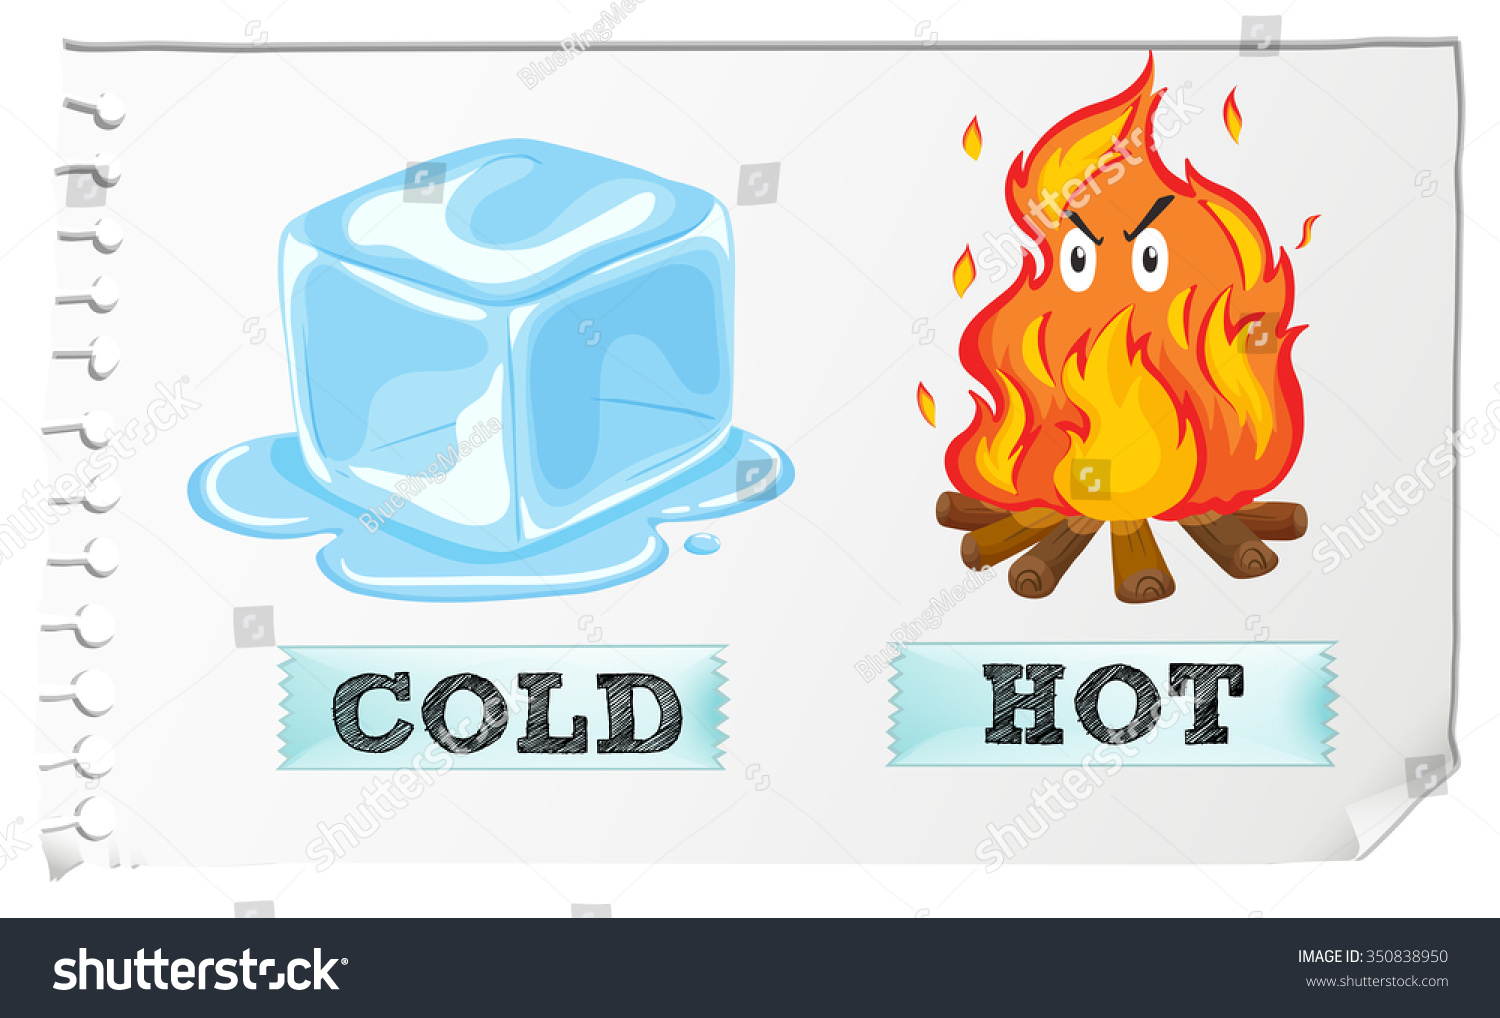 Opposite Adjectives Cold Hot Illustration Stock Vector